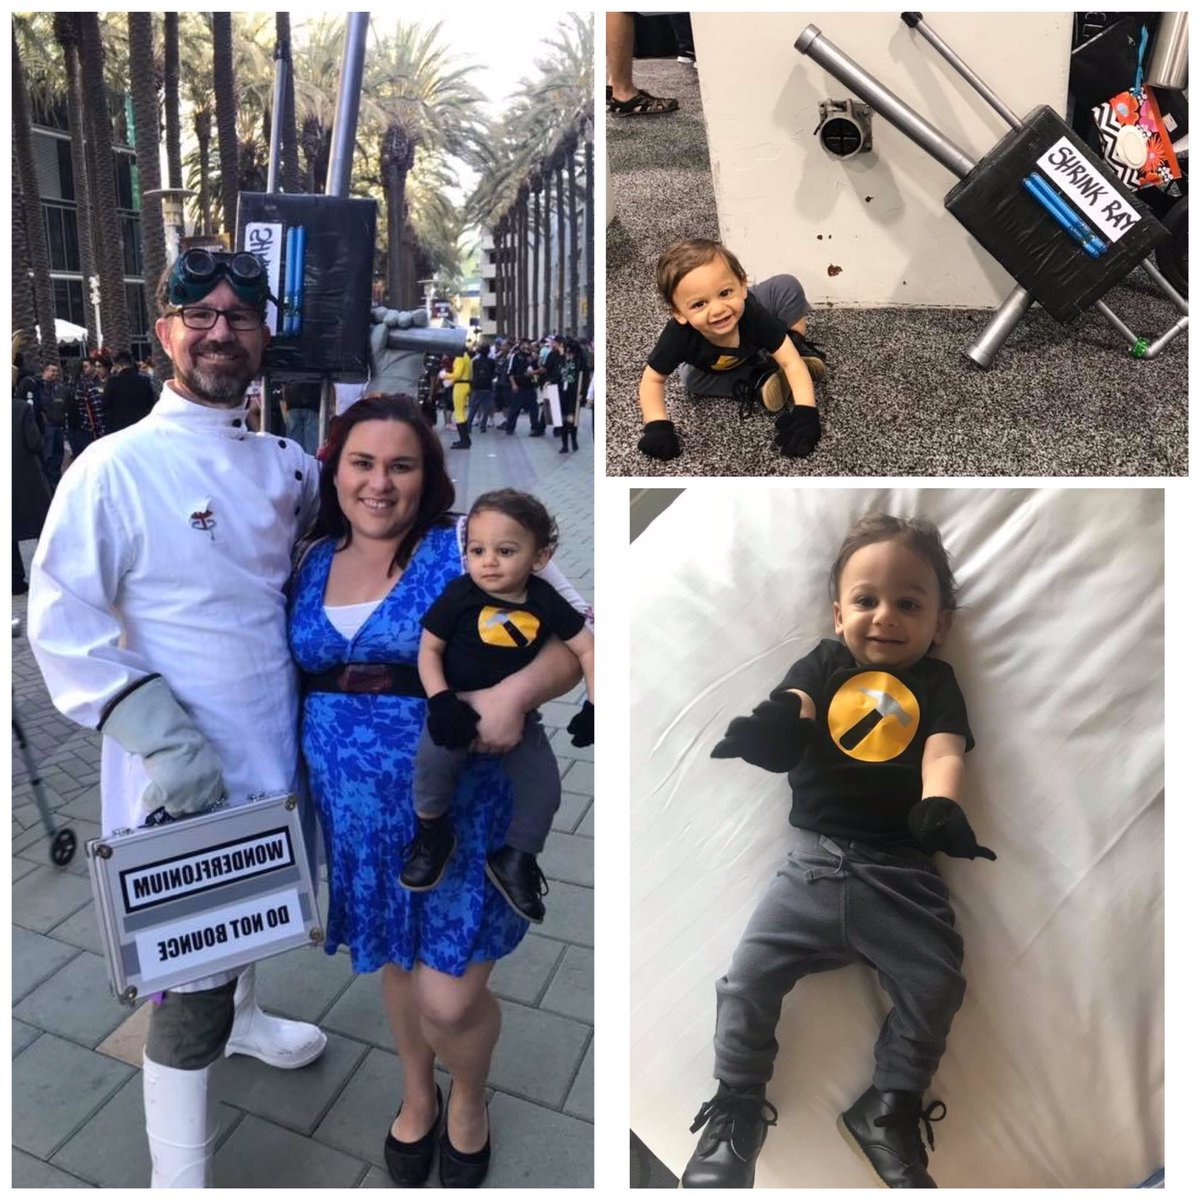 We've been looking forward to @Whedoncon since last year. It's so much fun to hang out with all your friends in person when you only get to see them on IG and FB for most of the year. Our tiny Captain Hammer is ready to go and we are on a panel Saturday! See you all there!<br>http://pic.twitter.com/uCyNEpwuvP